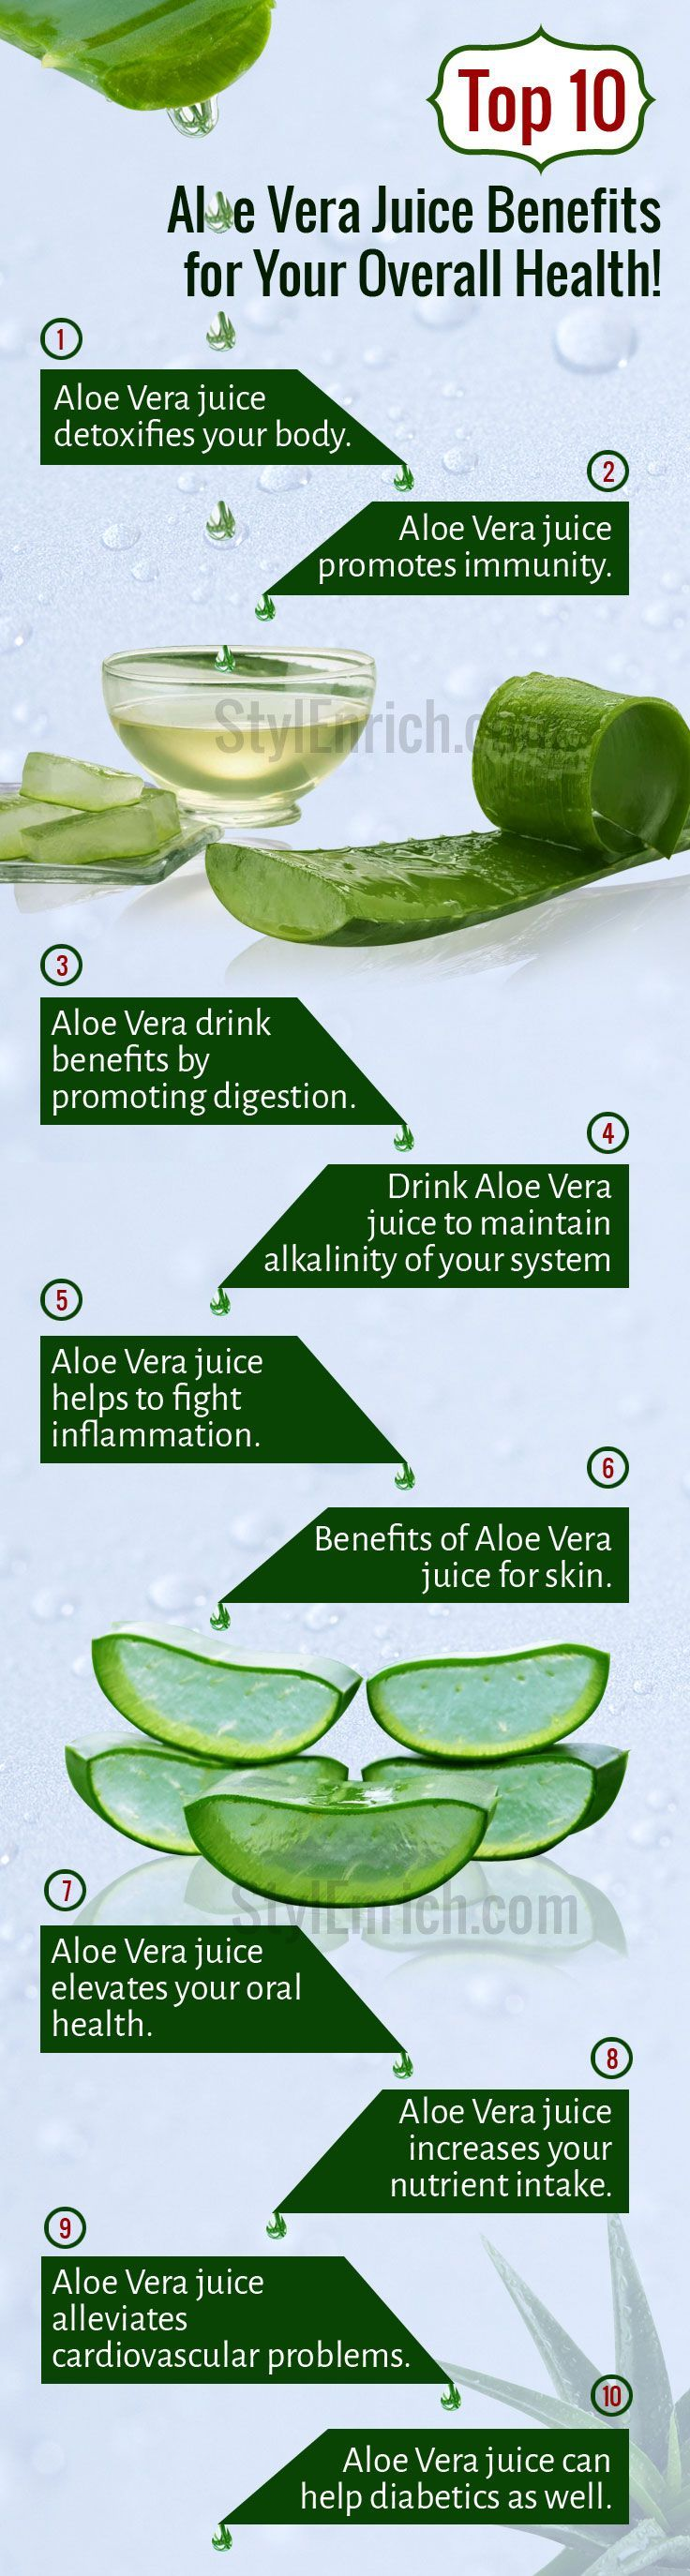 #AloeVeraJuice is one of the best well-known #HomeRemedies that have many Health Benefits.